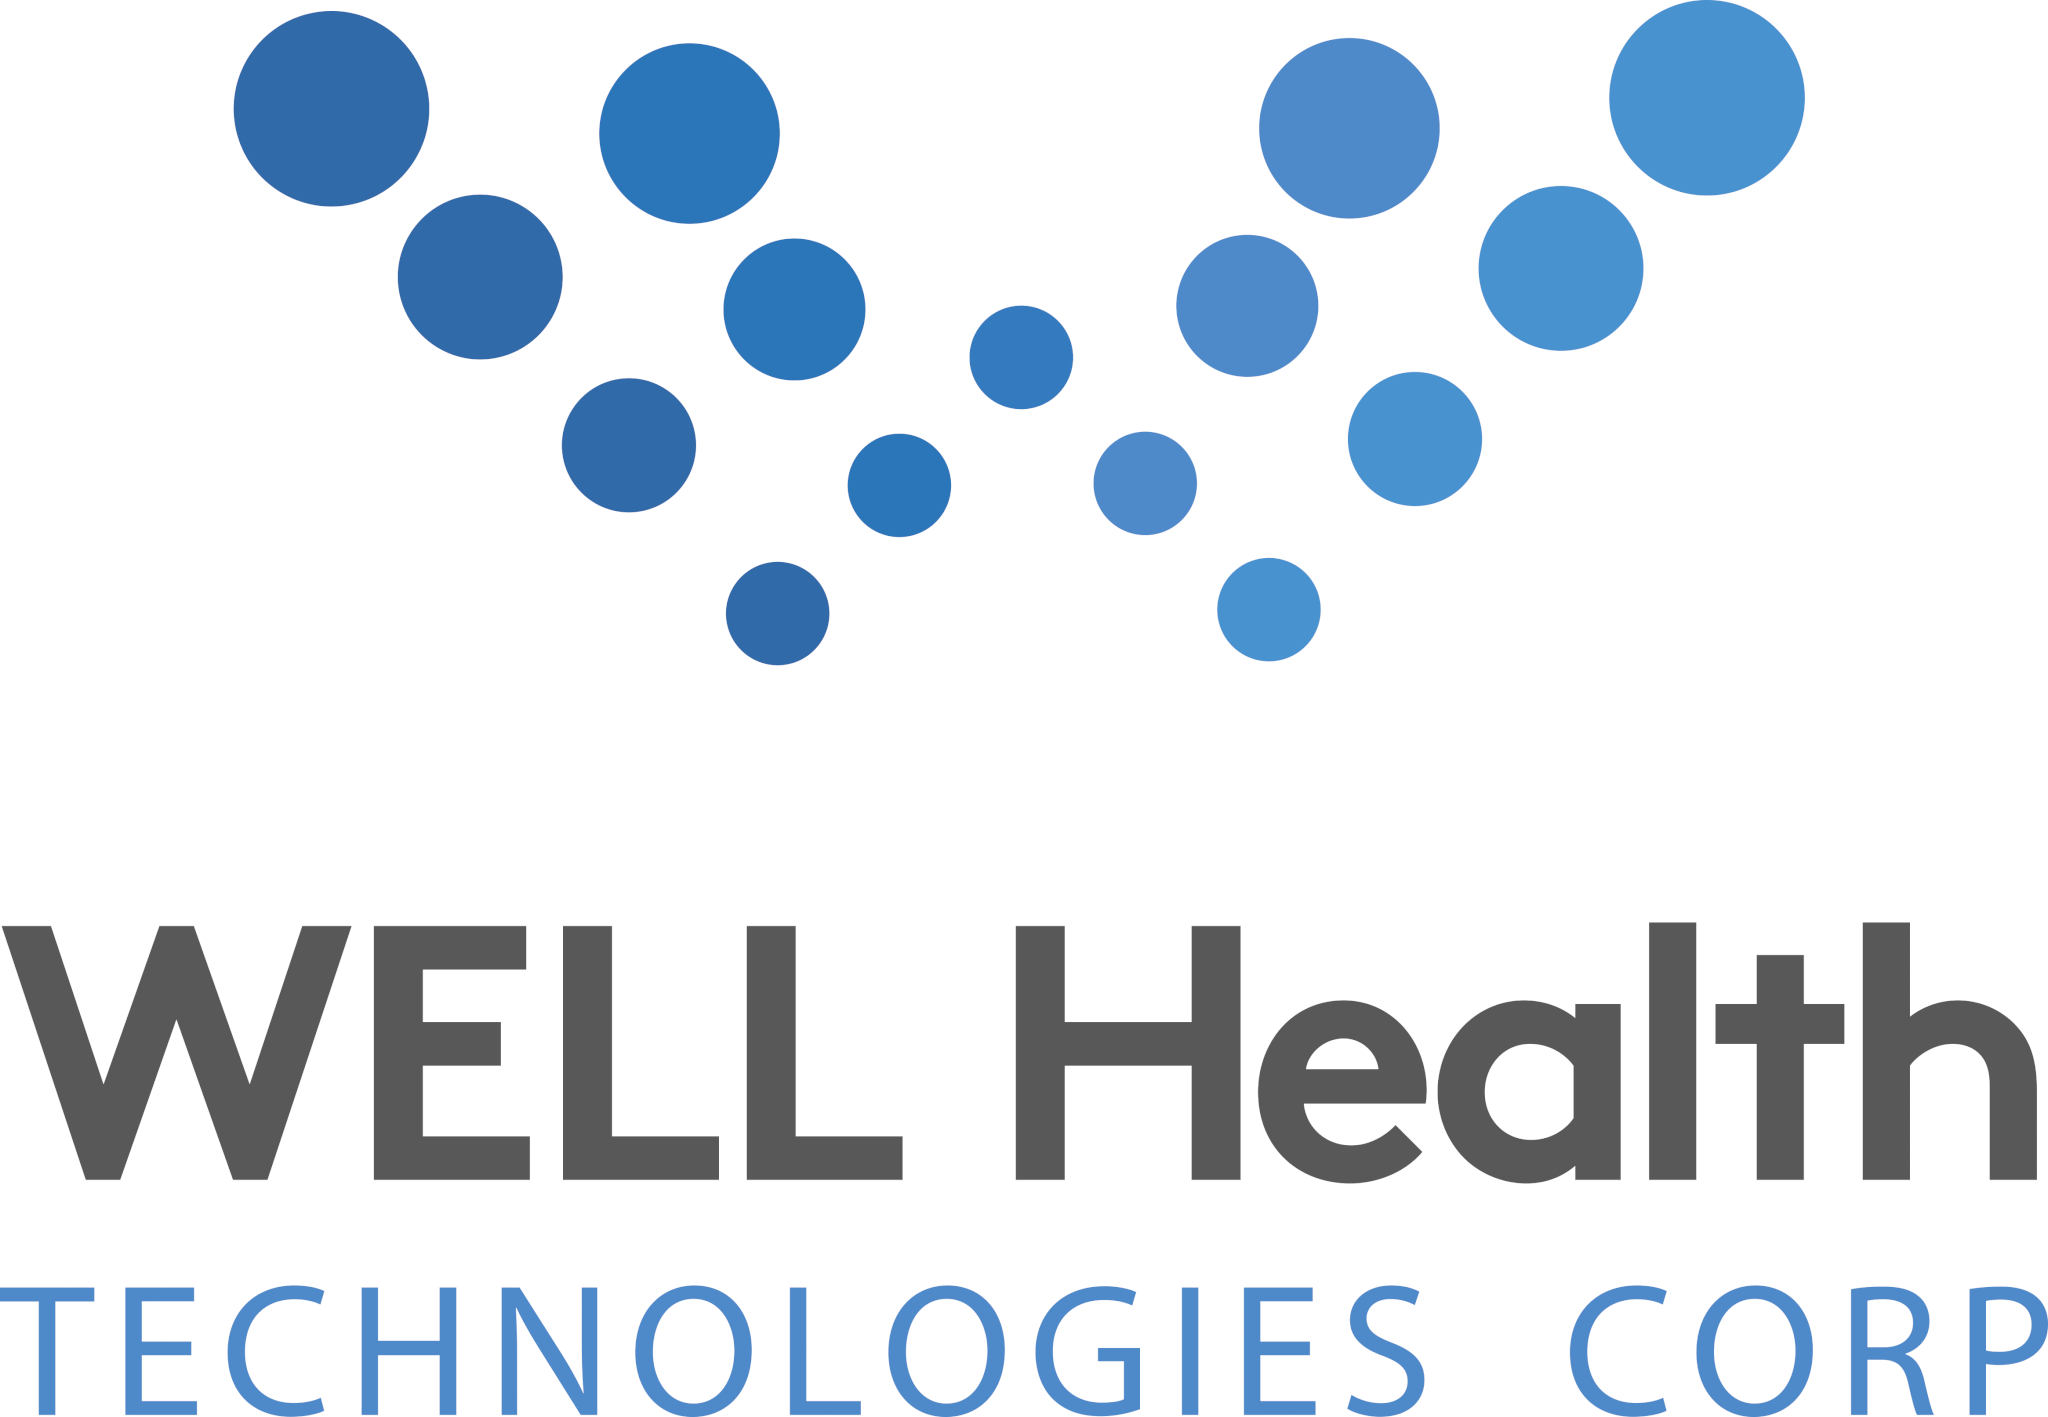 WELL Health Technologies Corp